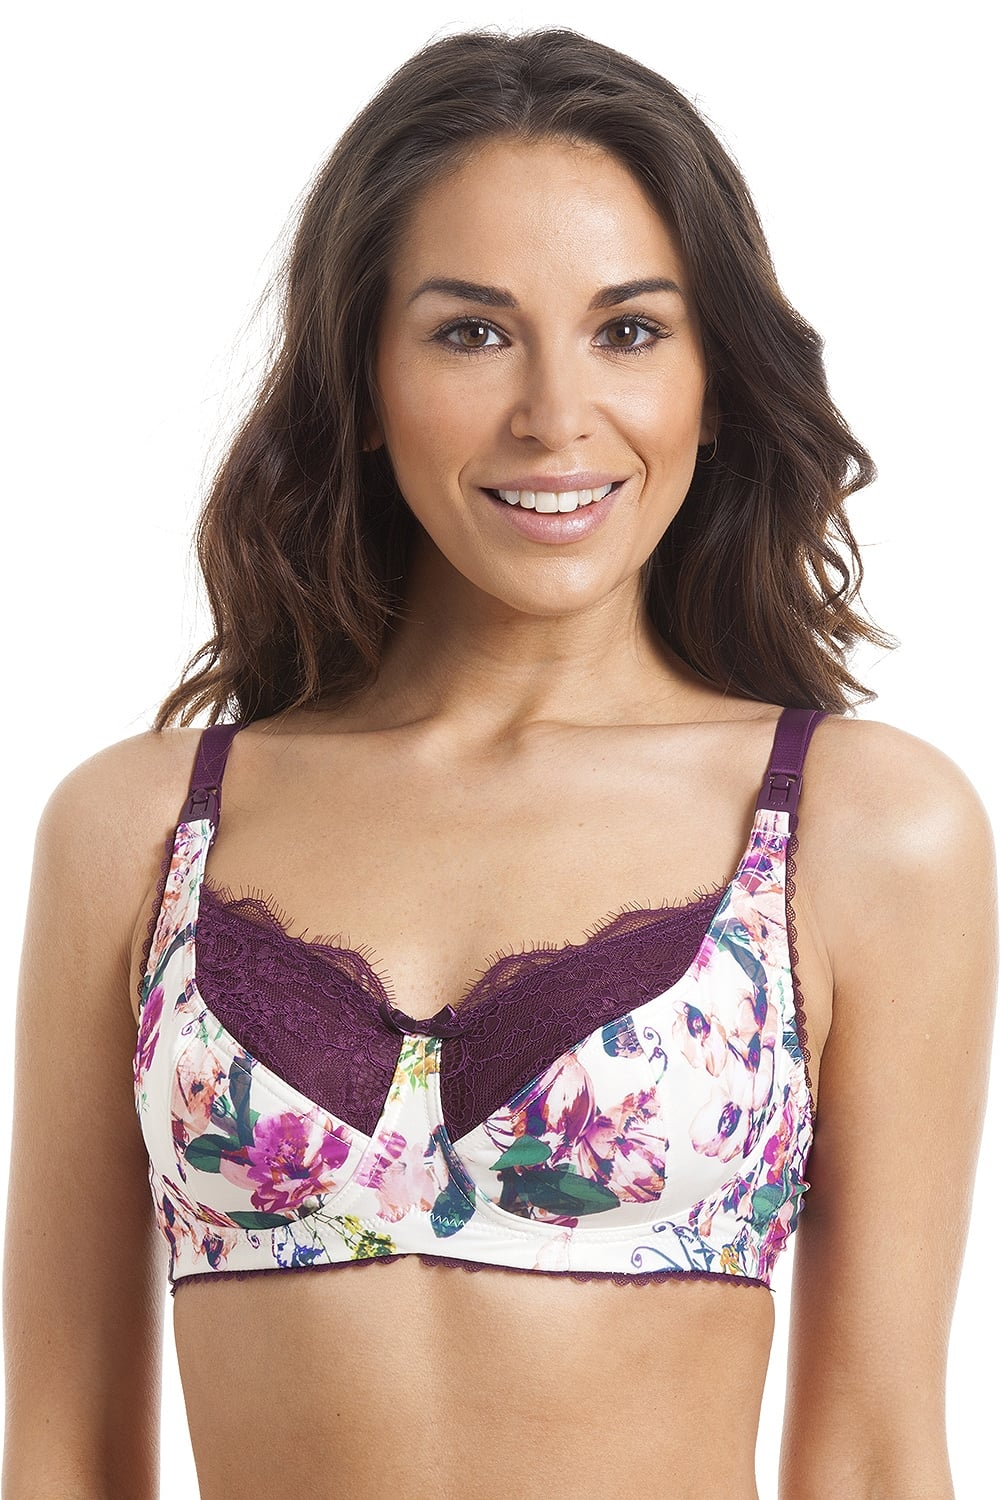 eb2890c2c7 Royce Lingerie Womens Non Wired Florence Cream And Aubergine Floral Nursing  Bra